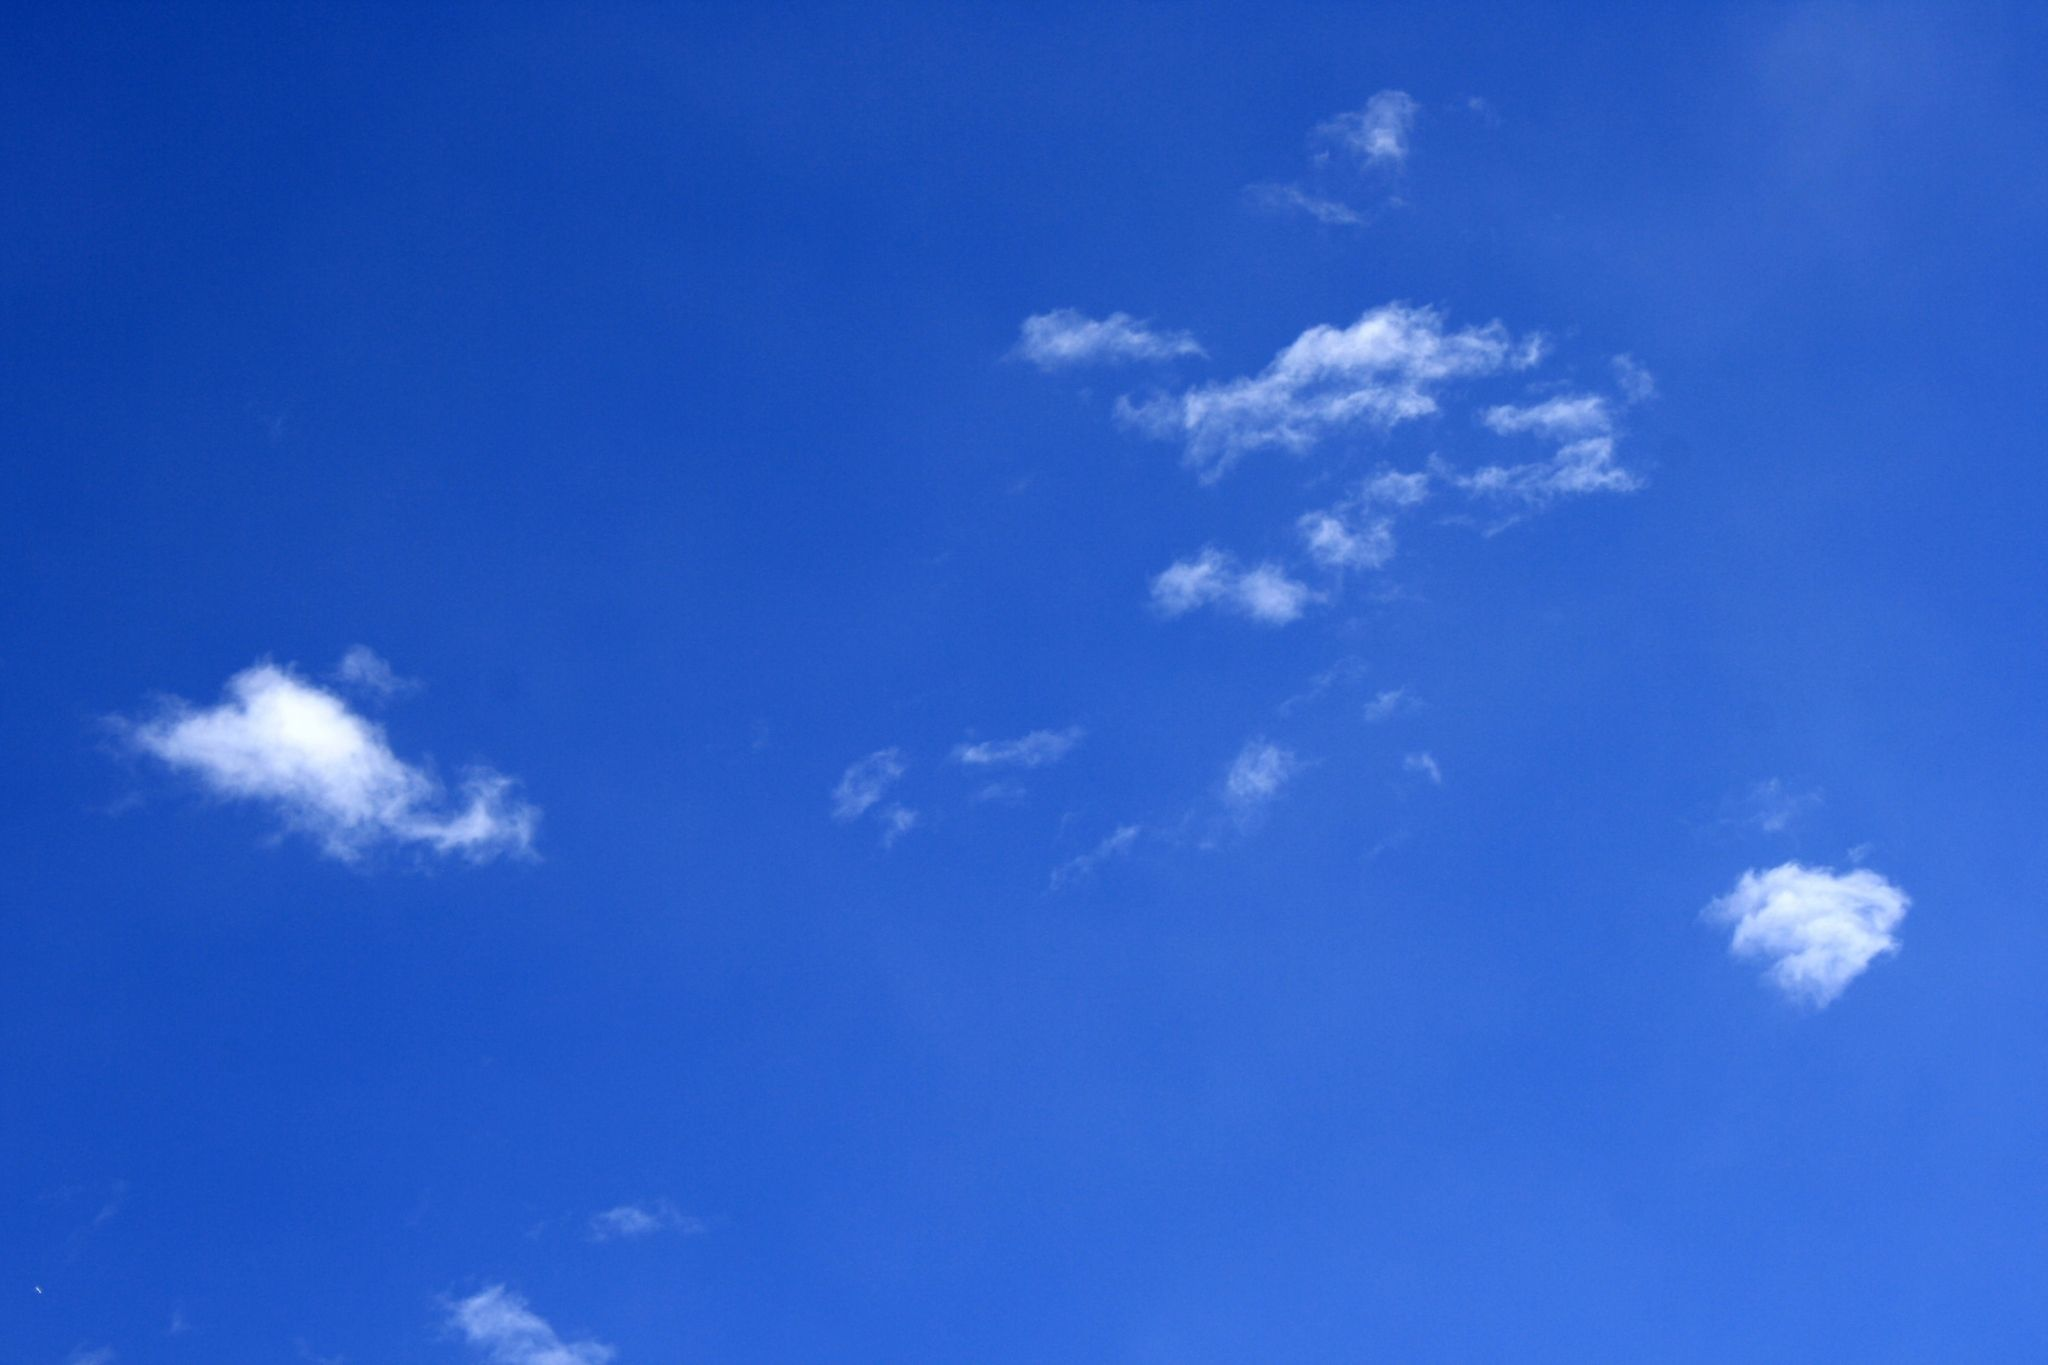 Sky Hd Wallpapers 1080p High Quality Sky Images Clear Blue Sky Sky